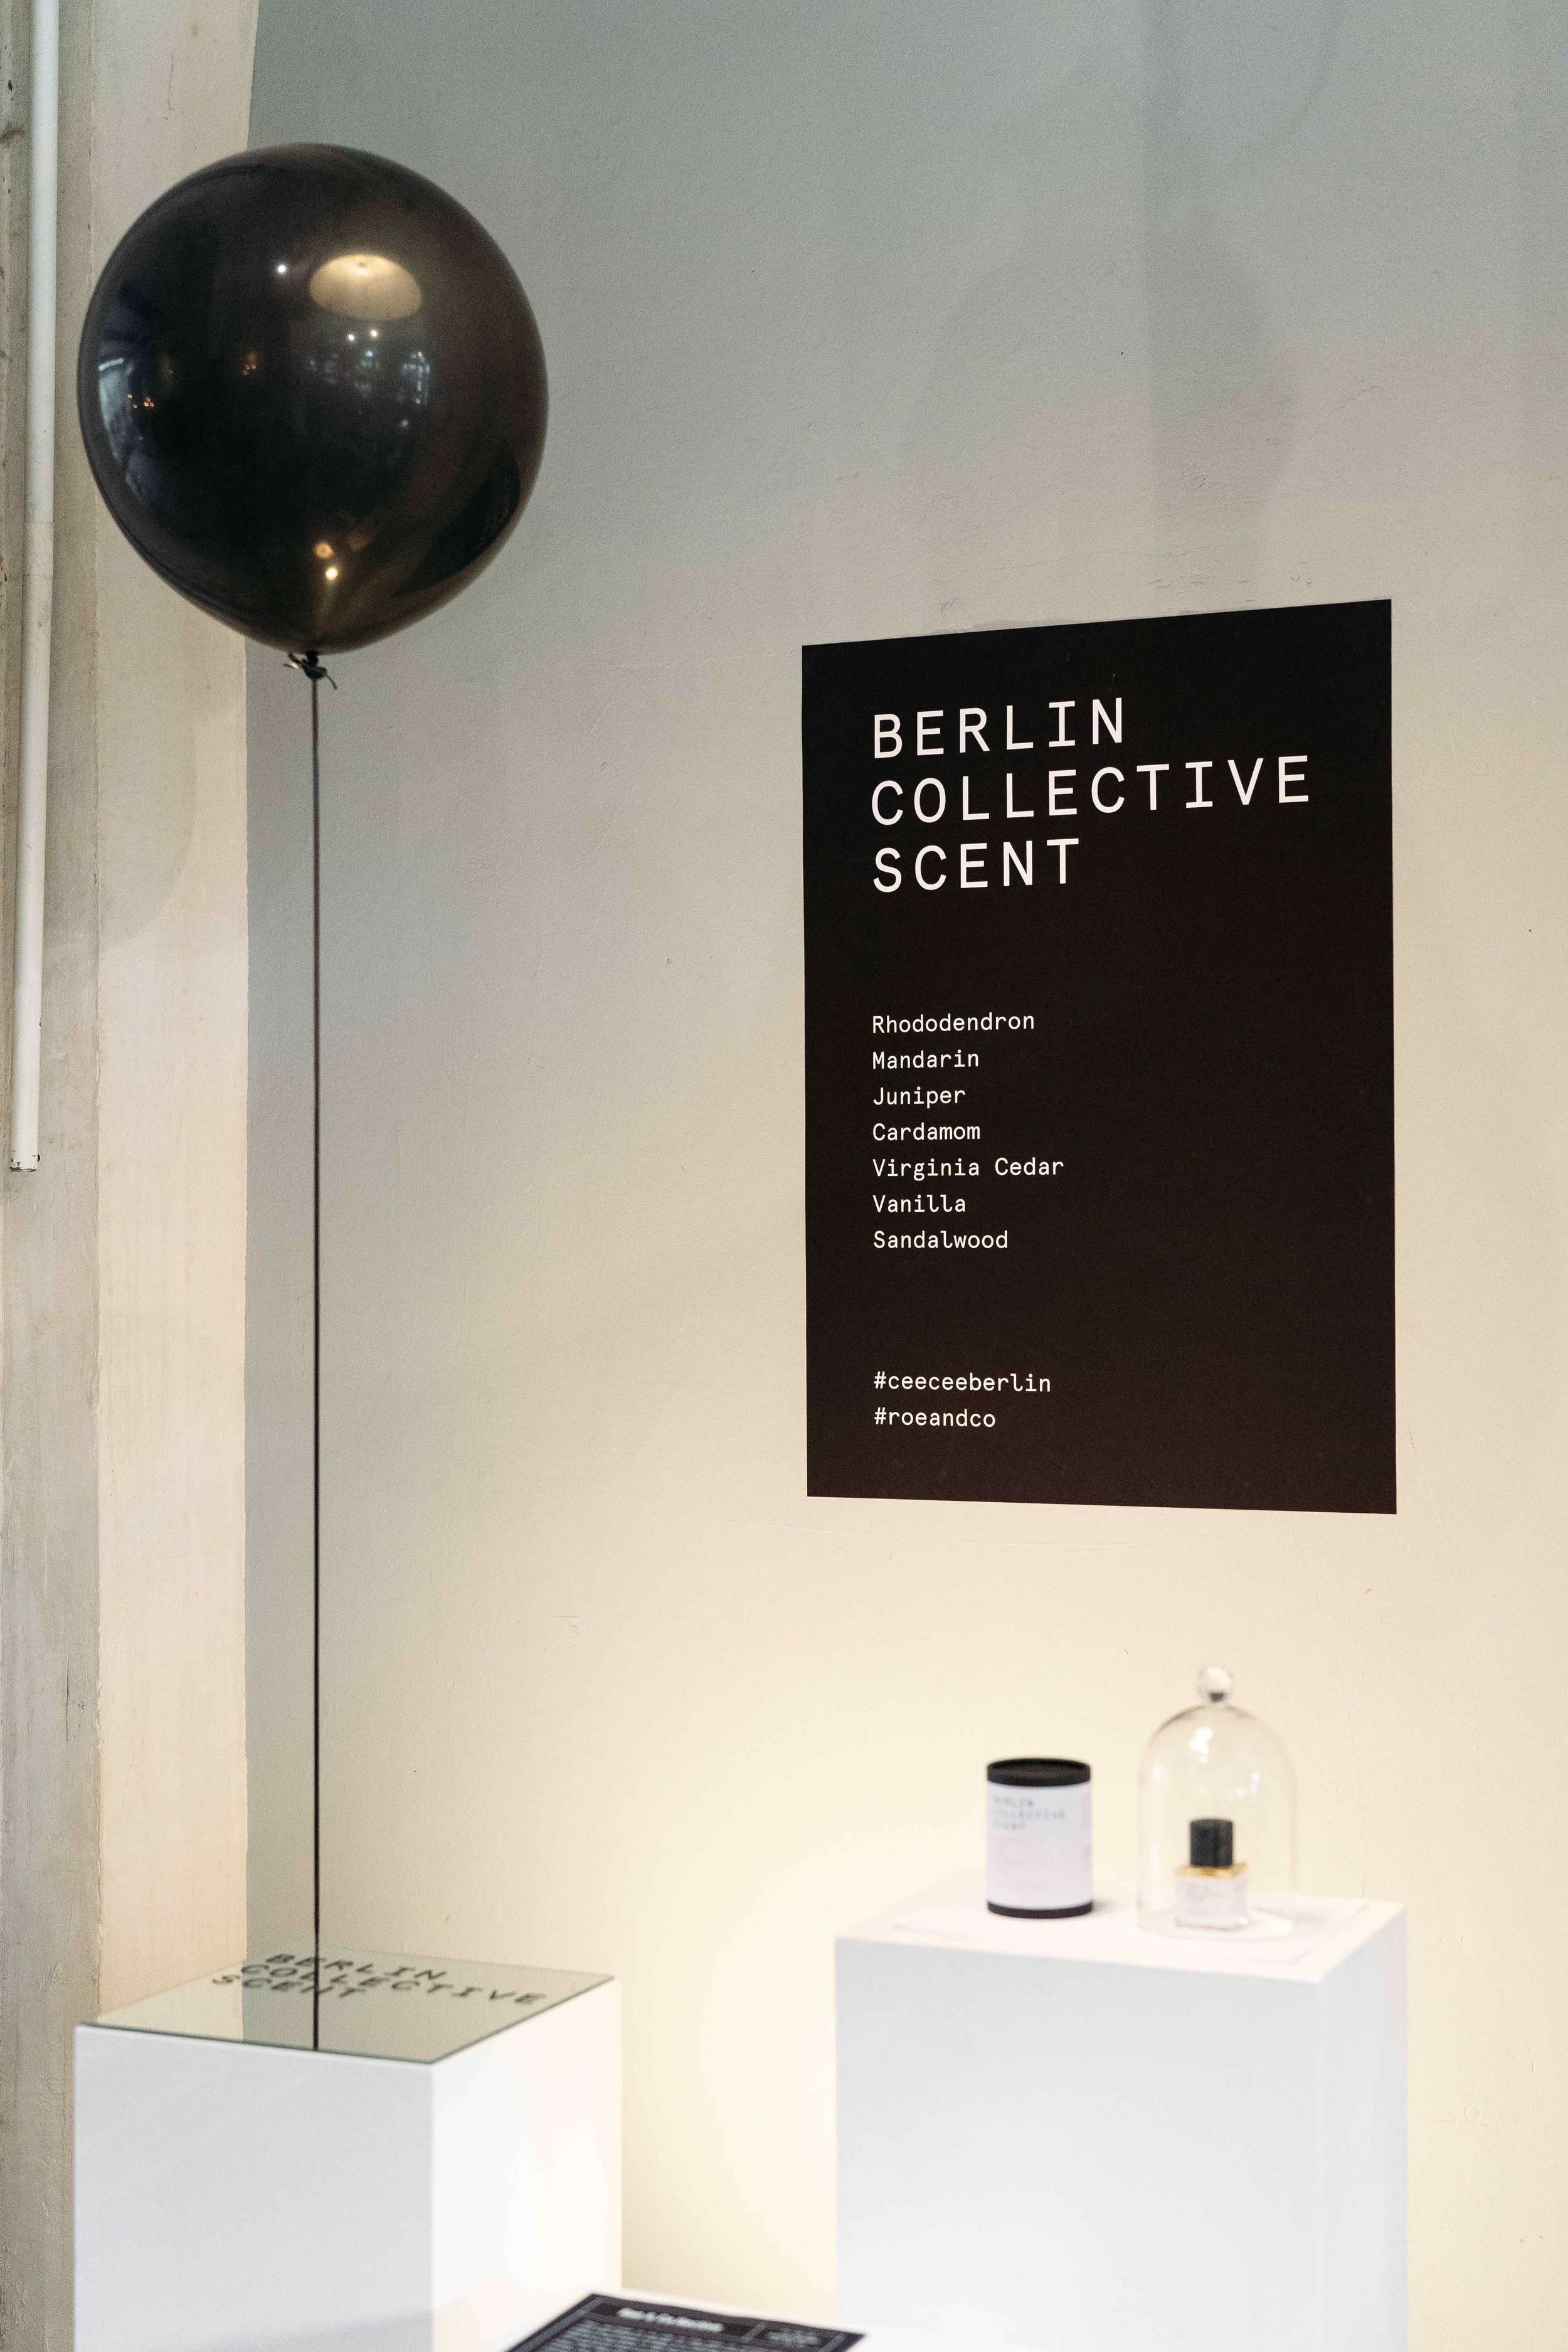 Cee-Cee-AER-Berlin Collective Scent-03731.jpg